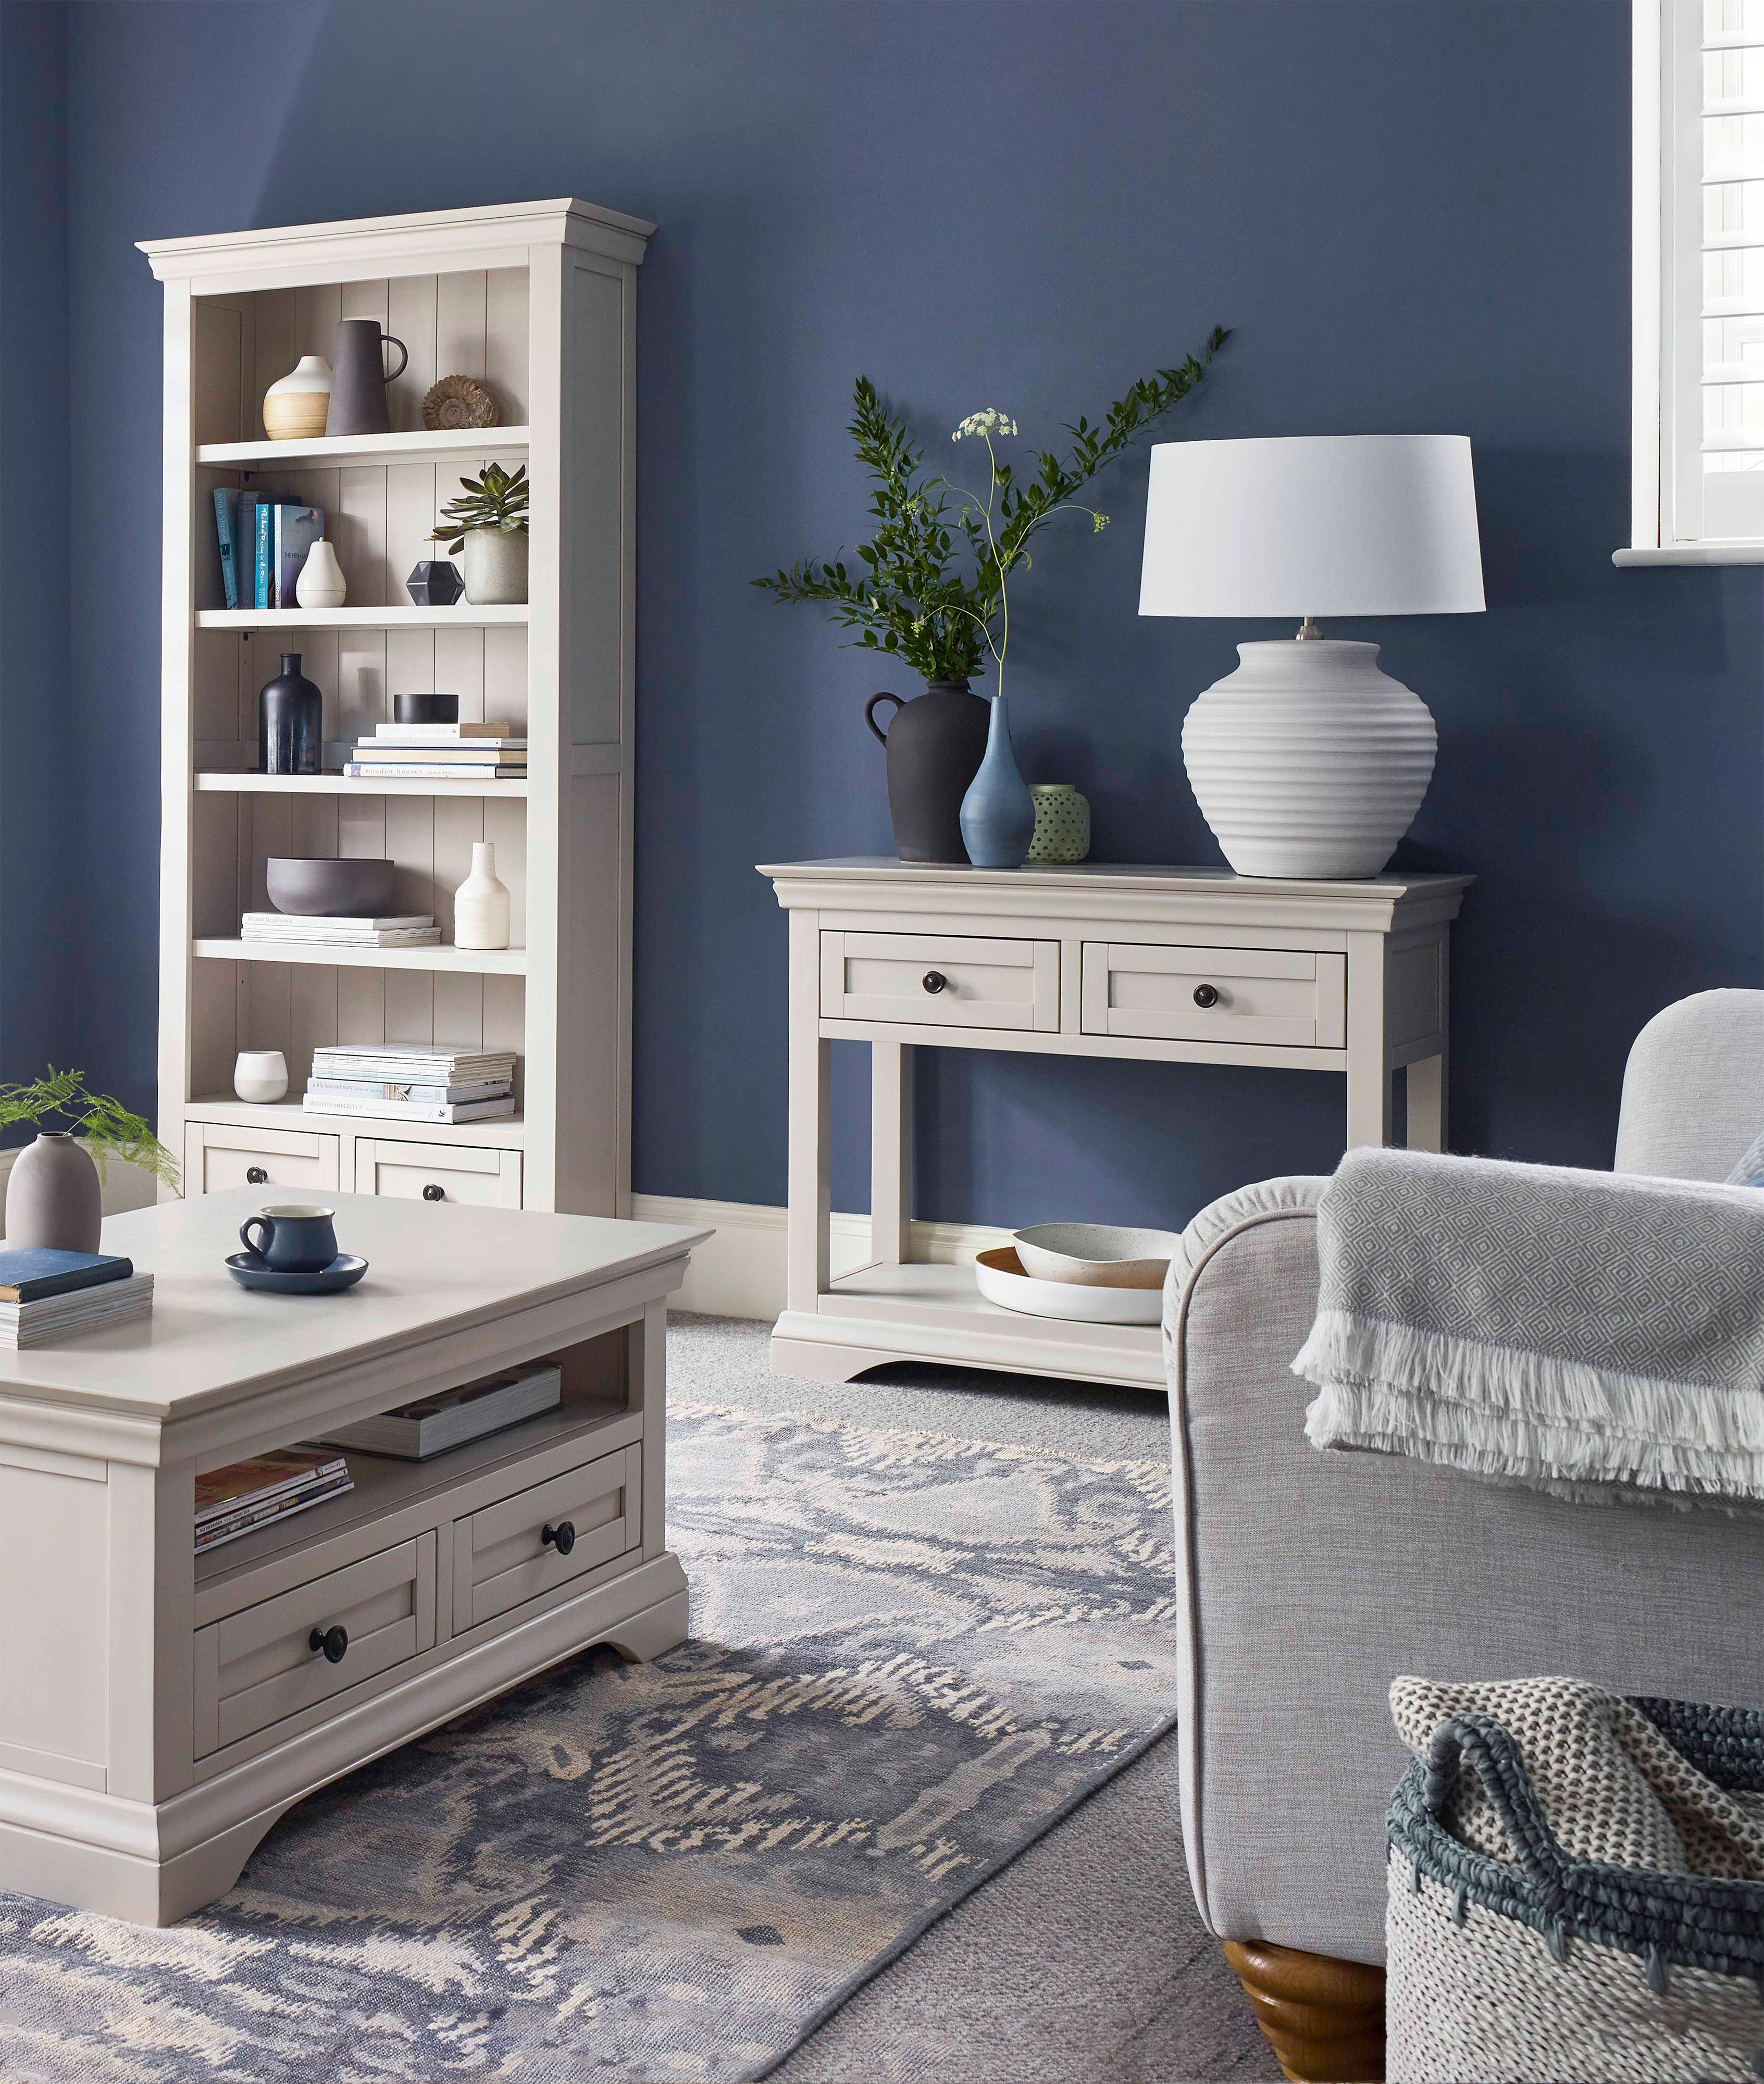 How To Style White And Grey Painted Furniture By Oak Furniture